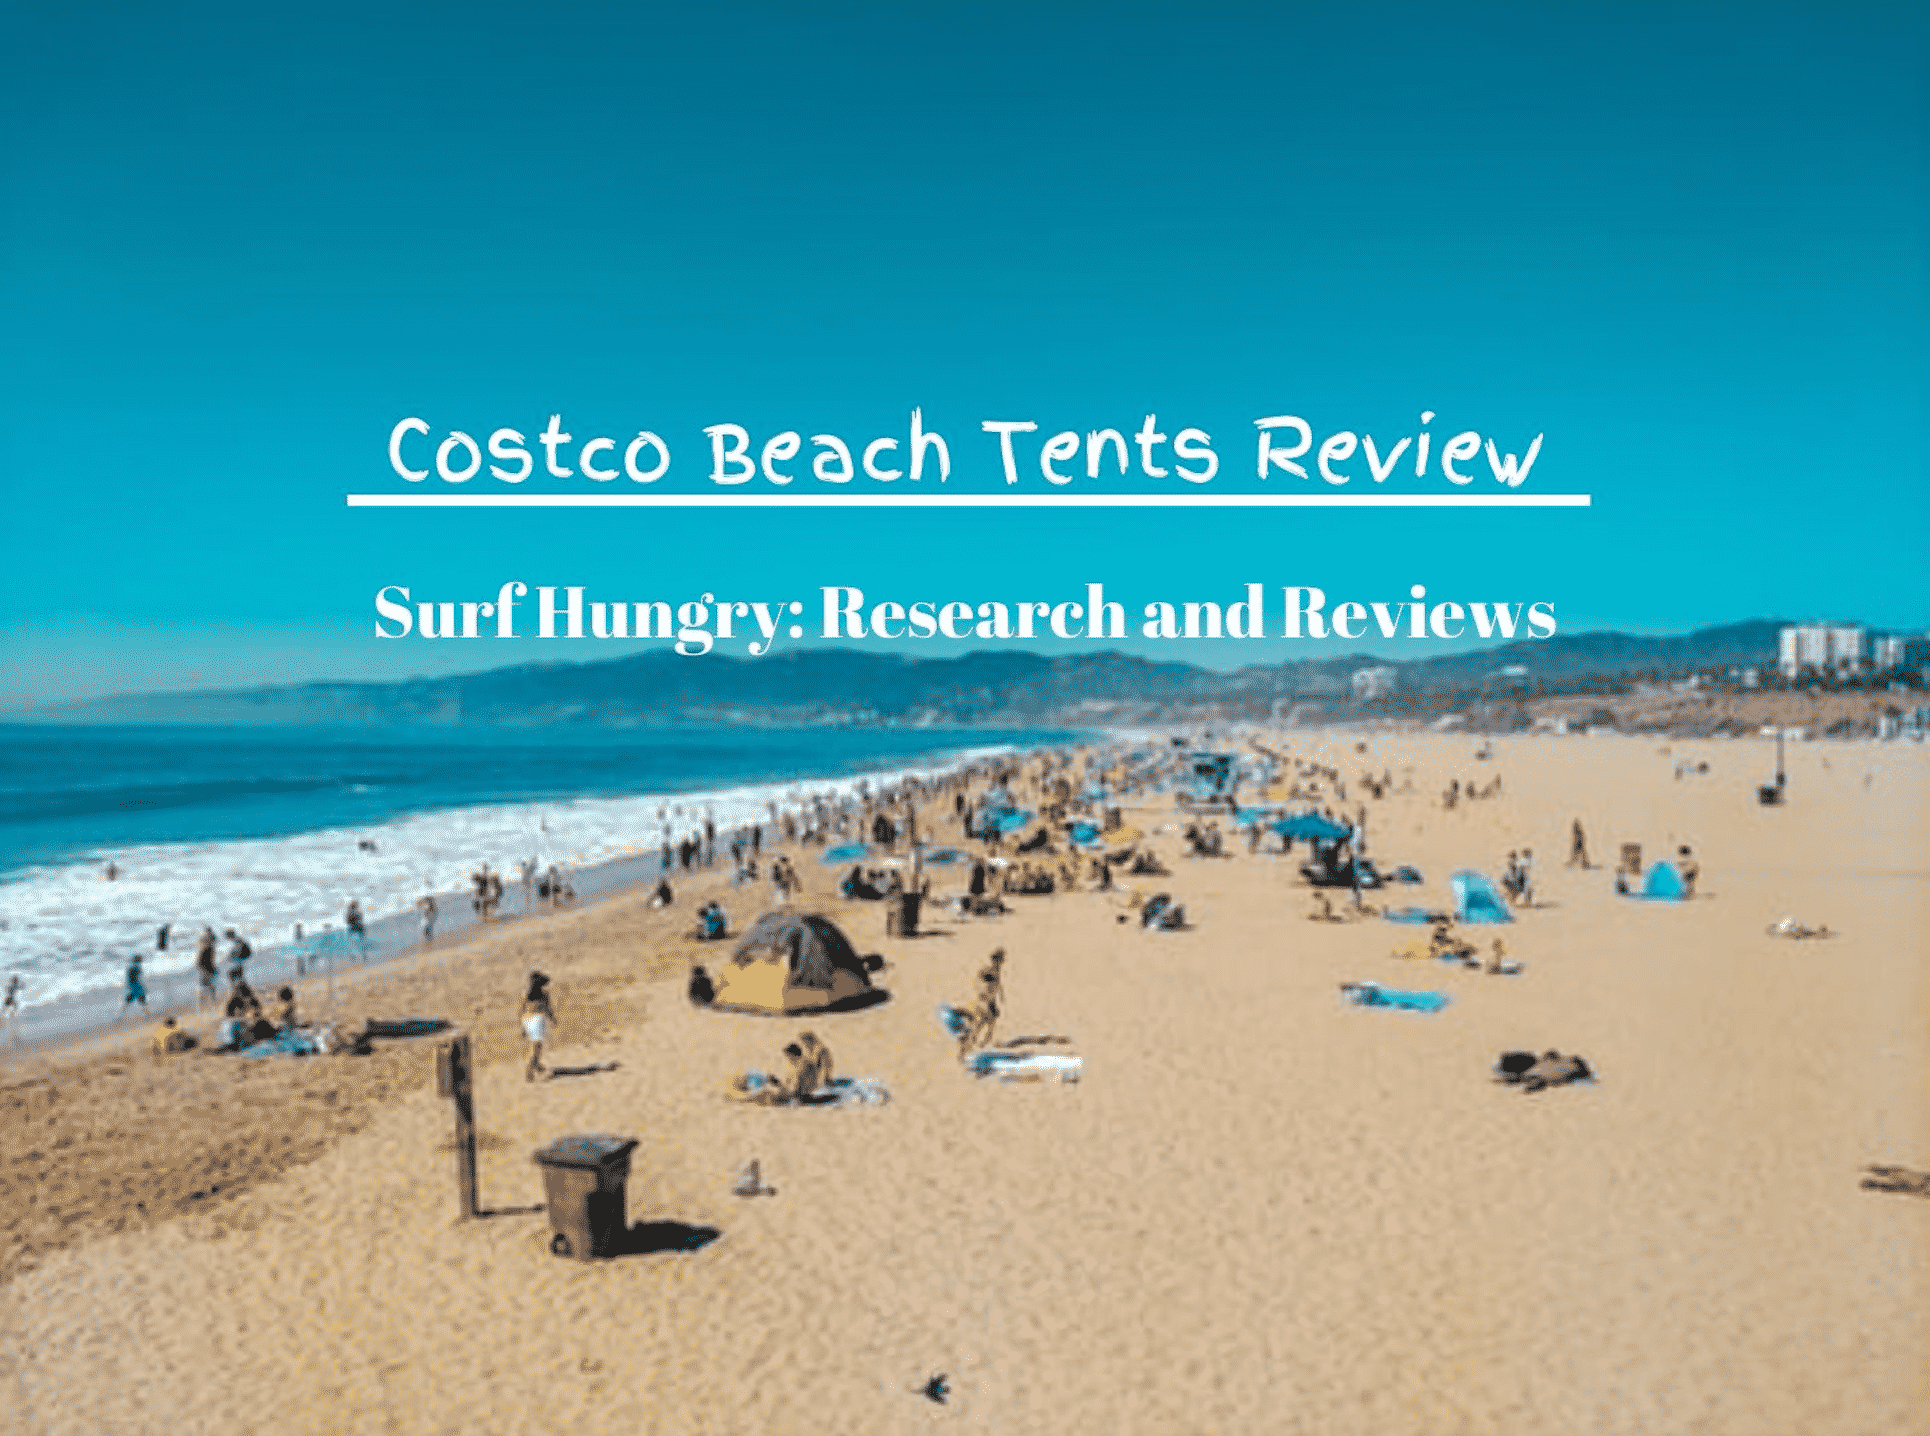 costco beach tents review